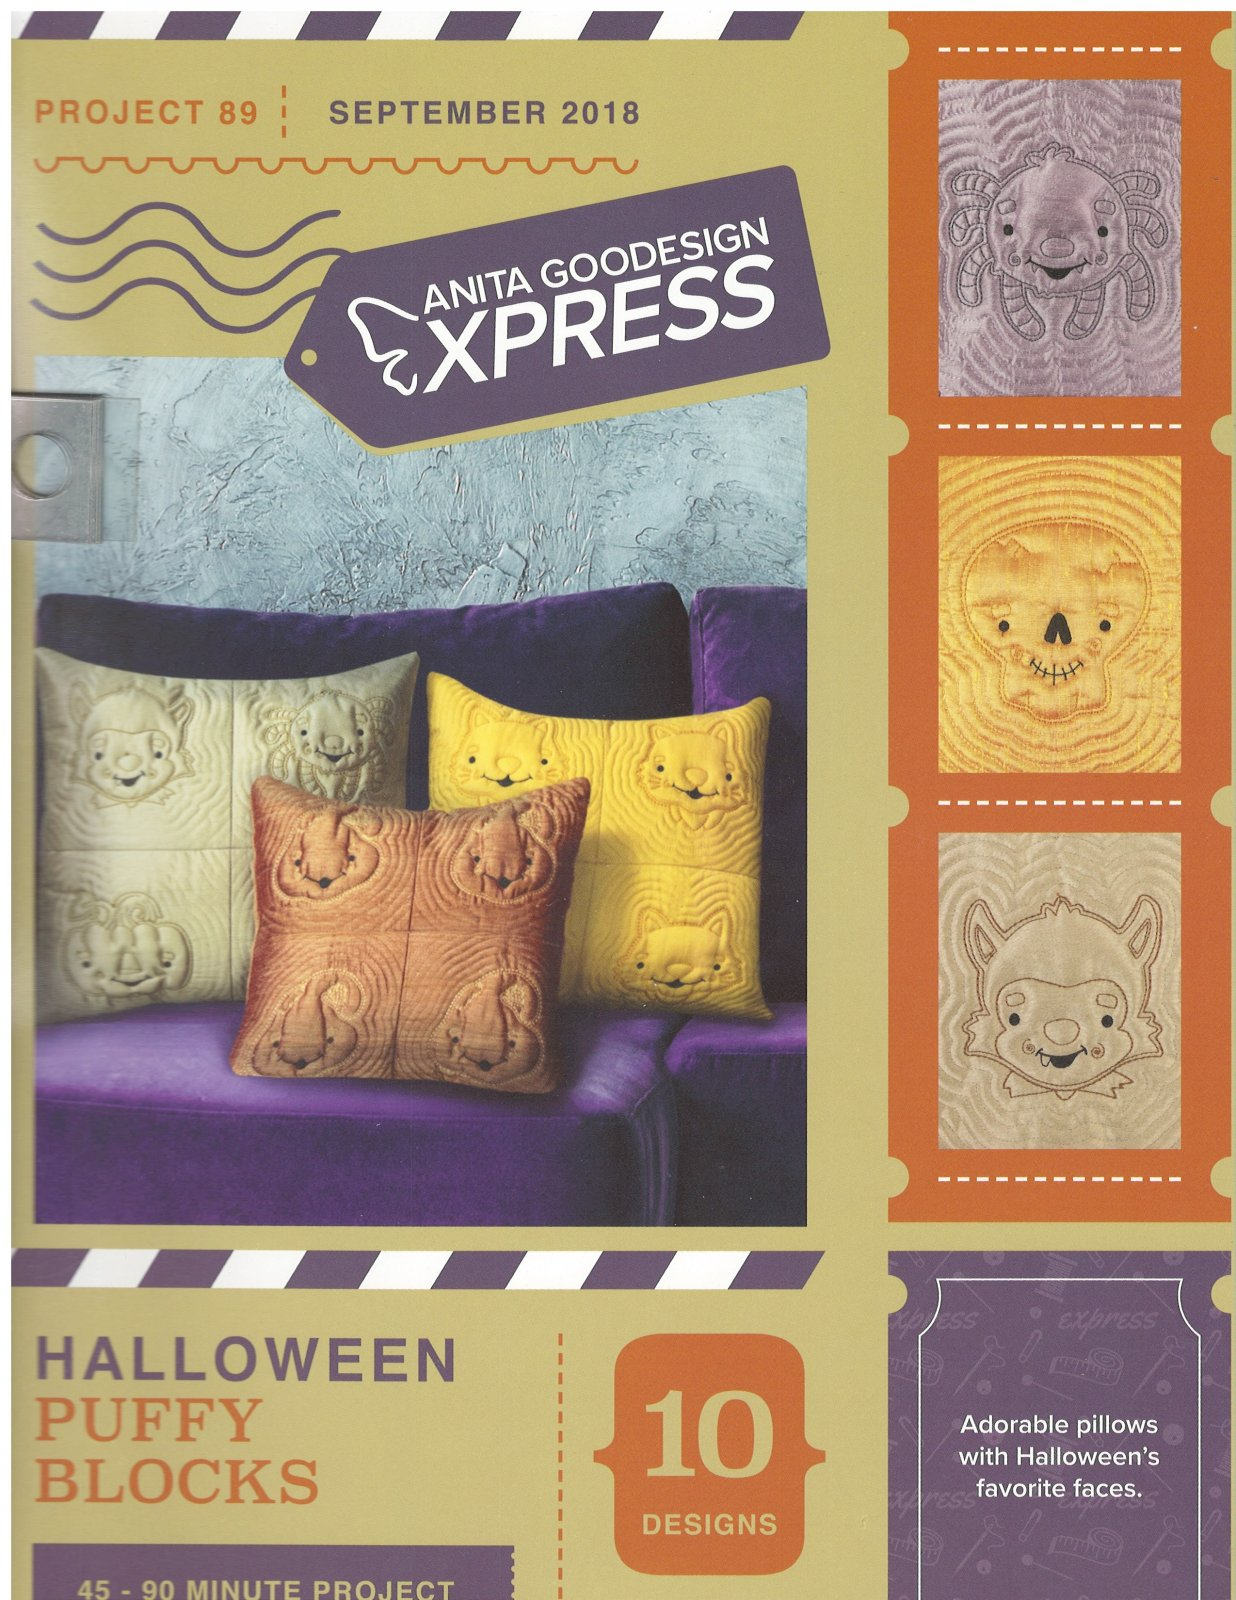 Anita Goodesign Express Machine Embroidery designs Halloween Puffy Blocks Full Collection CD